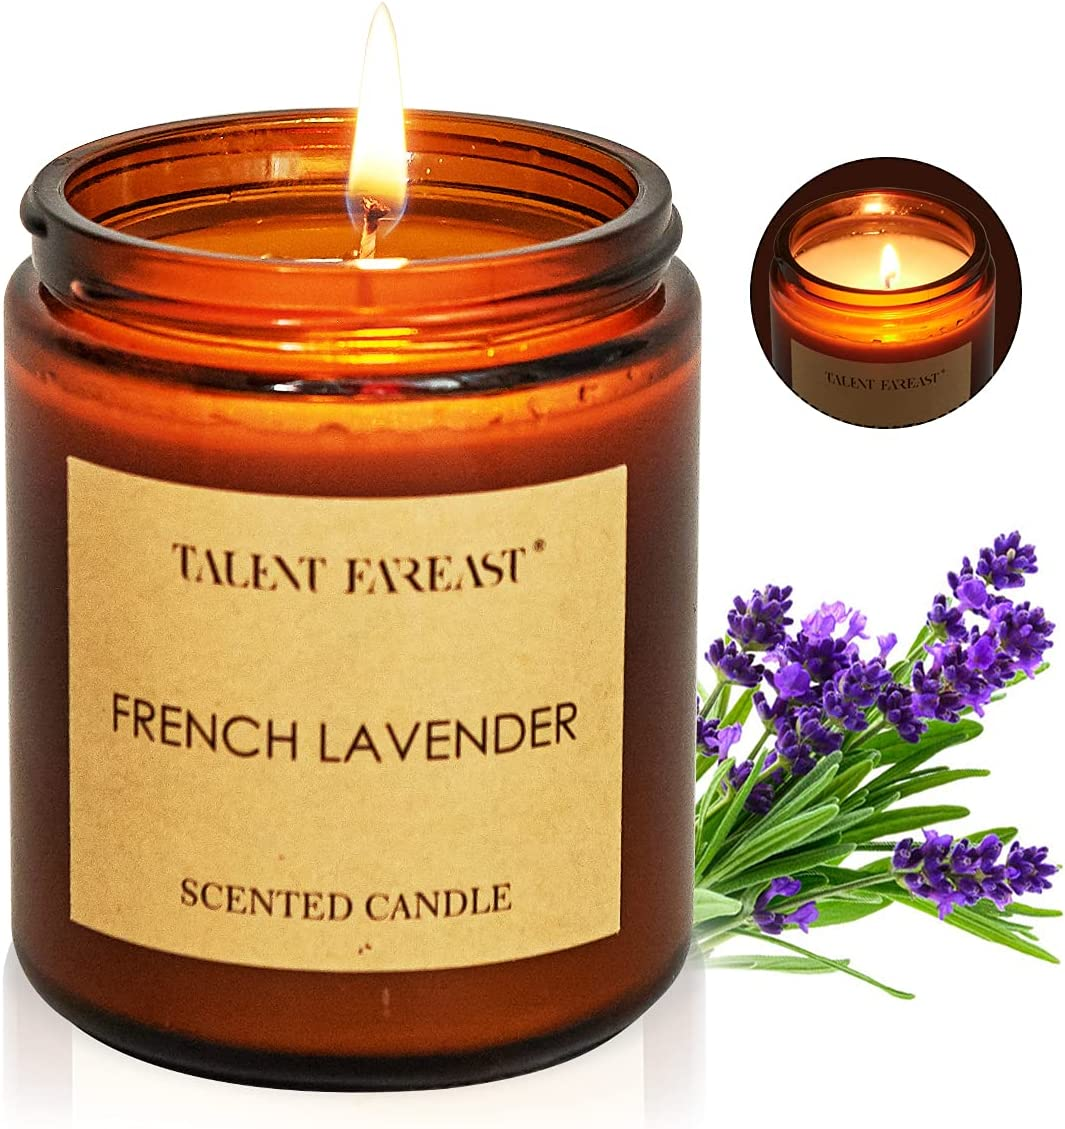 Candles for Home Scented, 7oz French Lavender Aromatherapy Candles Scented with Long Lasting Burning, Highly Home Scented Candles for Stress Relief Relaxation, Jar Candle Gifts for Women and Men